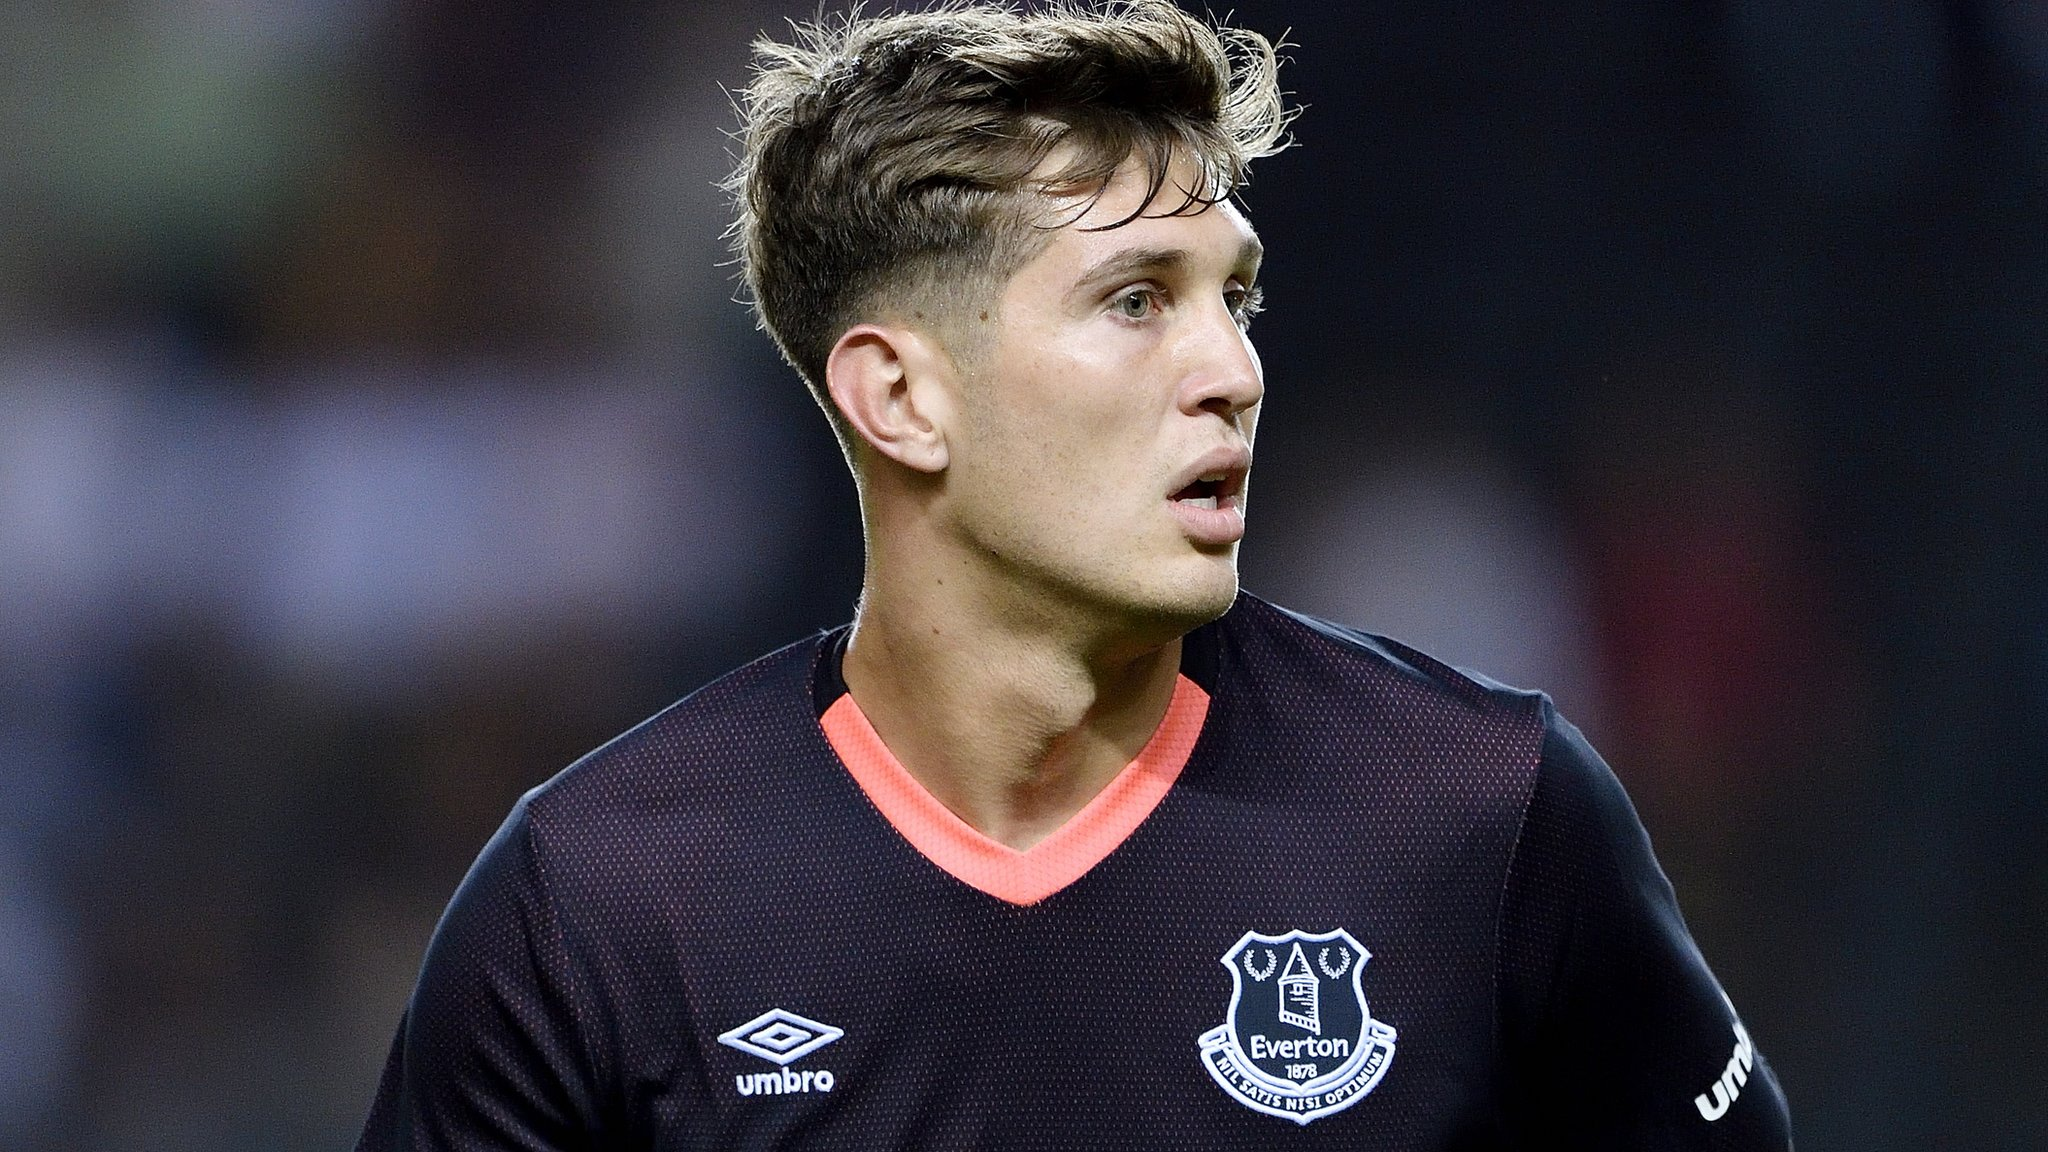 Man City approach Everton over £50m Stones